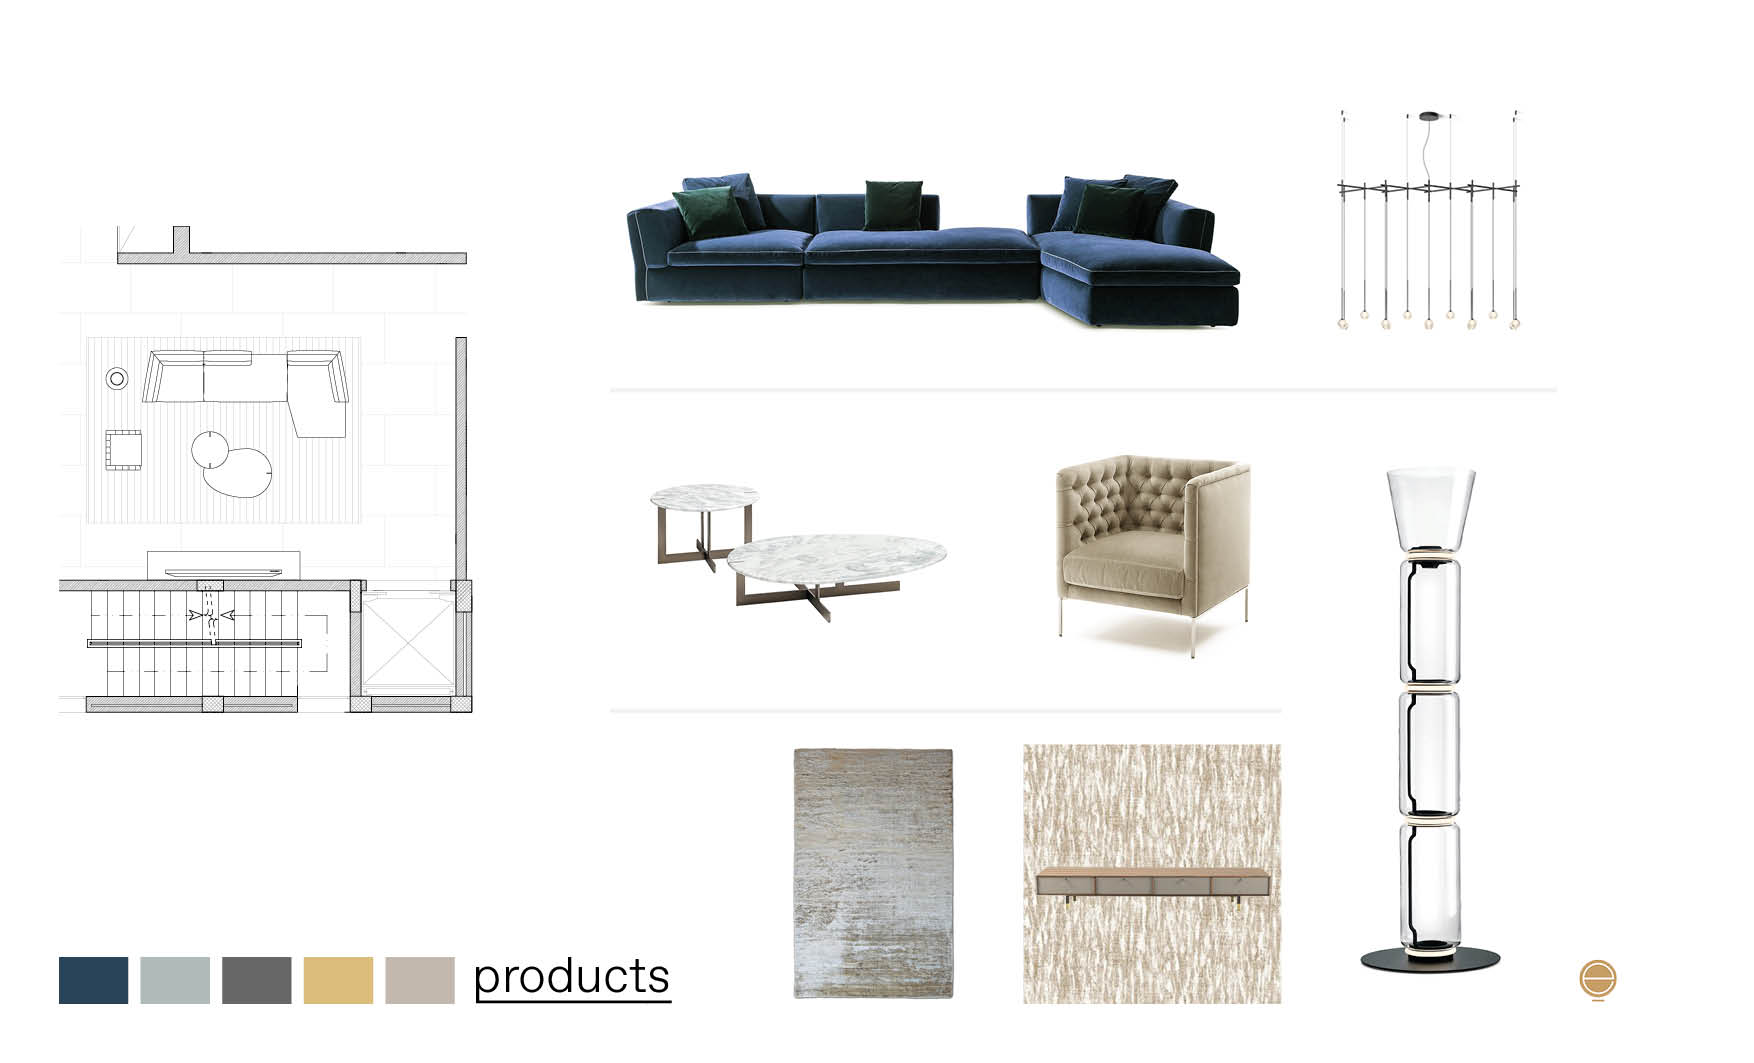 products moodboard of luxury Italian living room furniture made by Esperiri